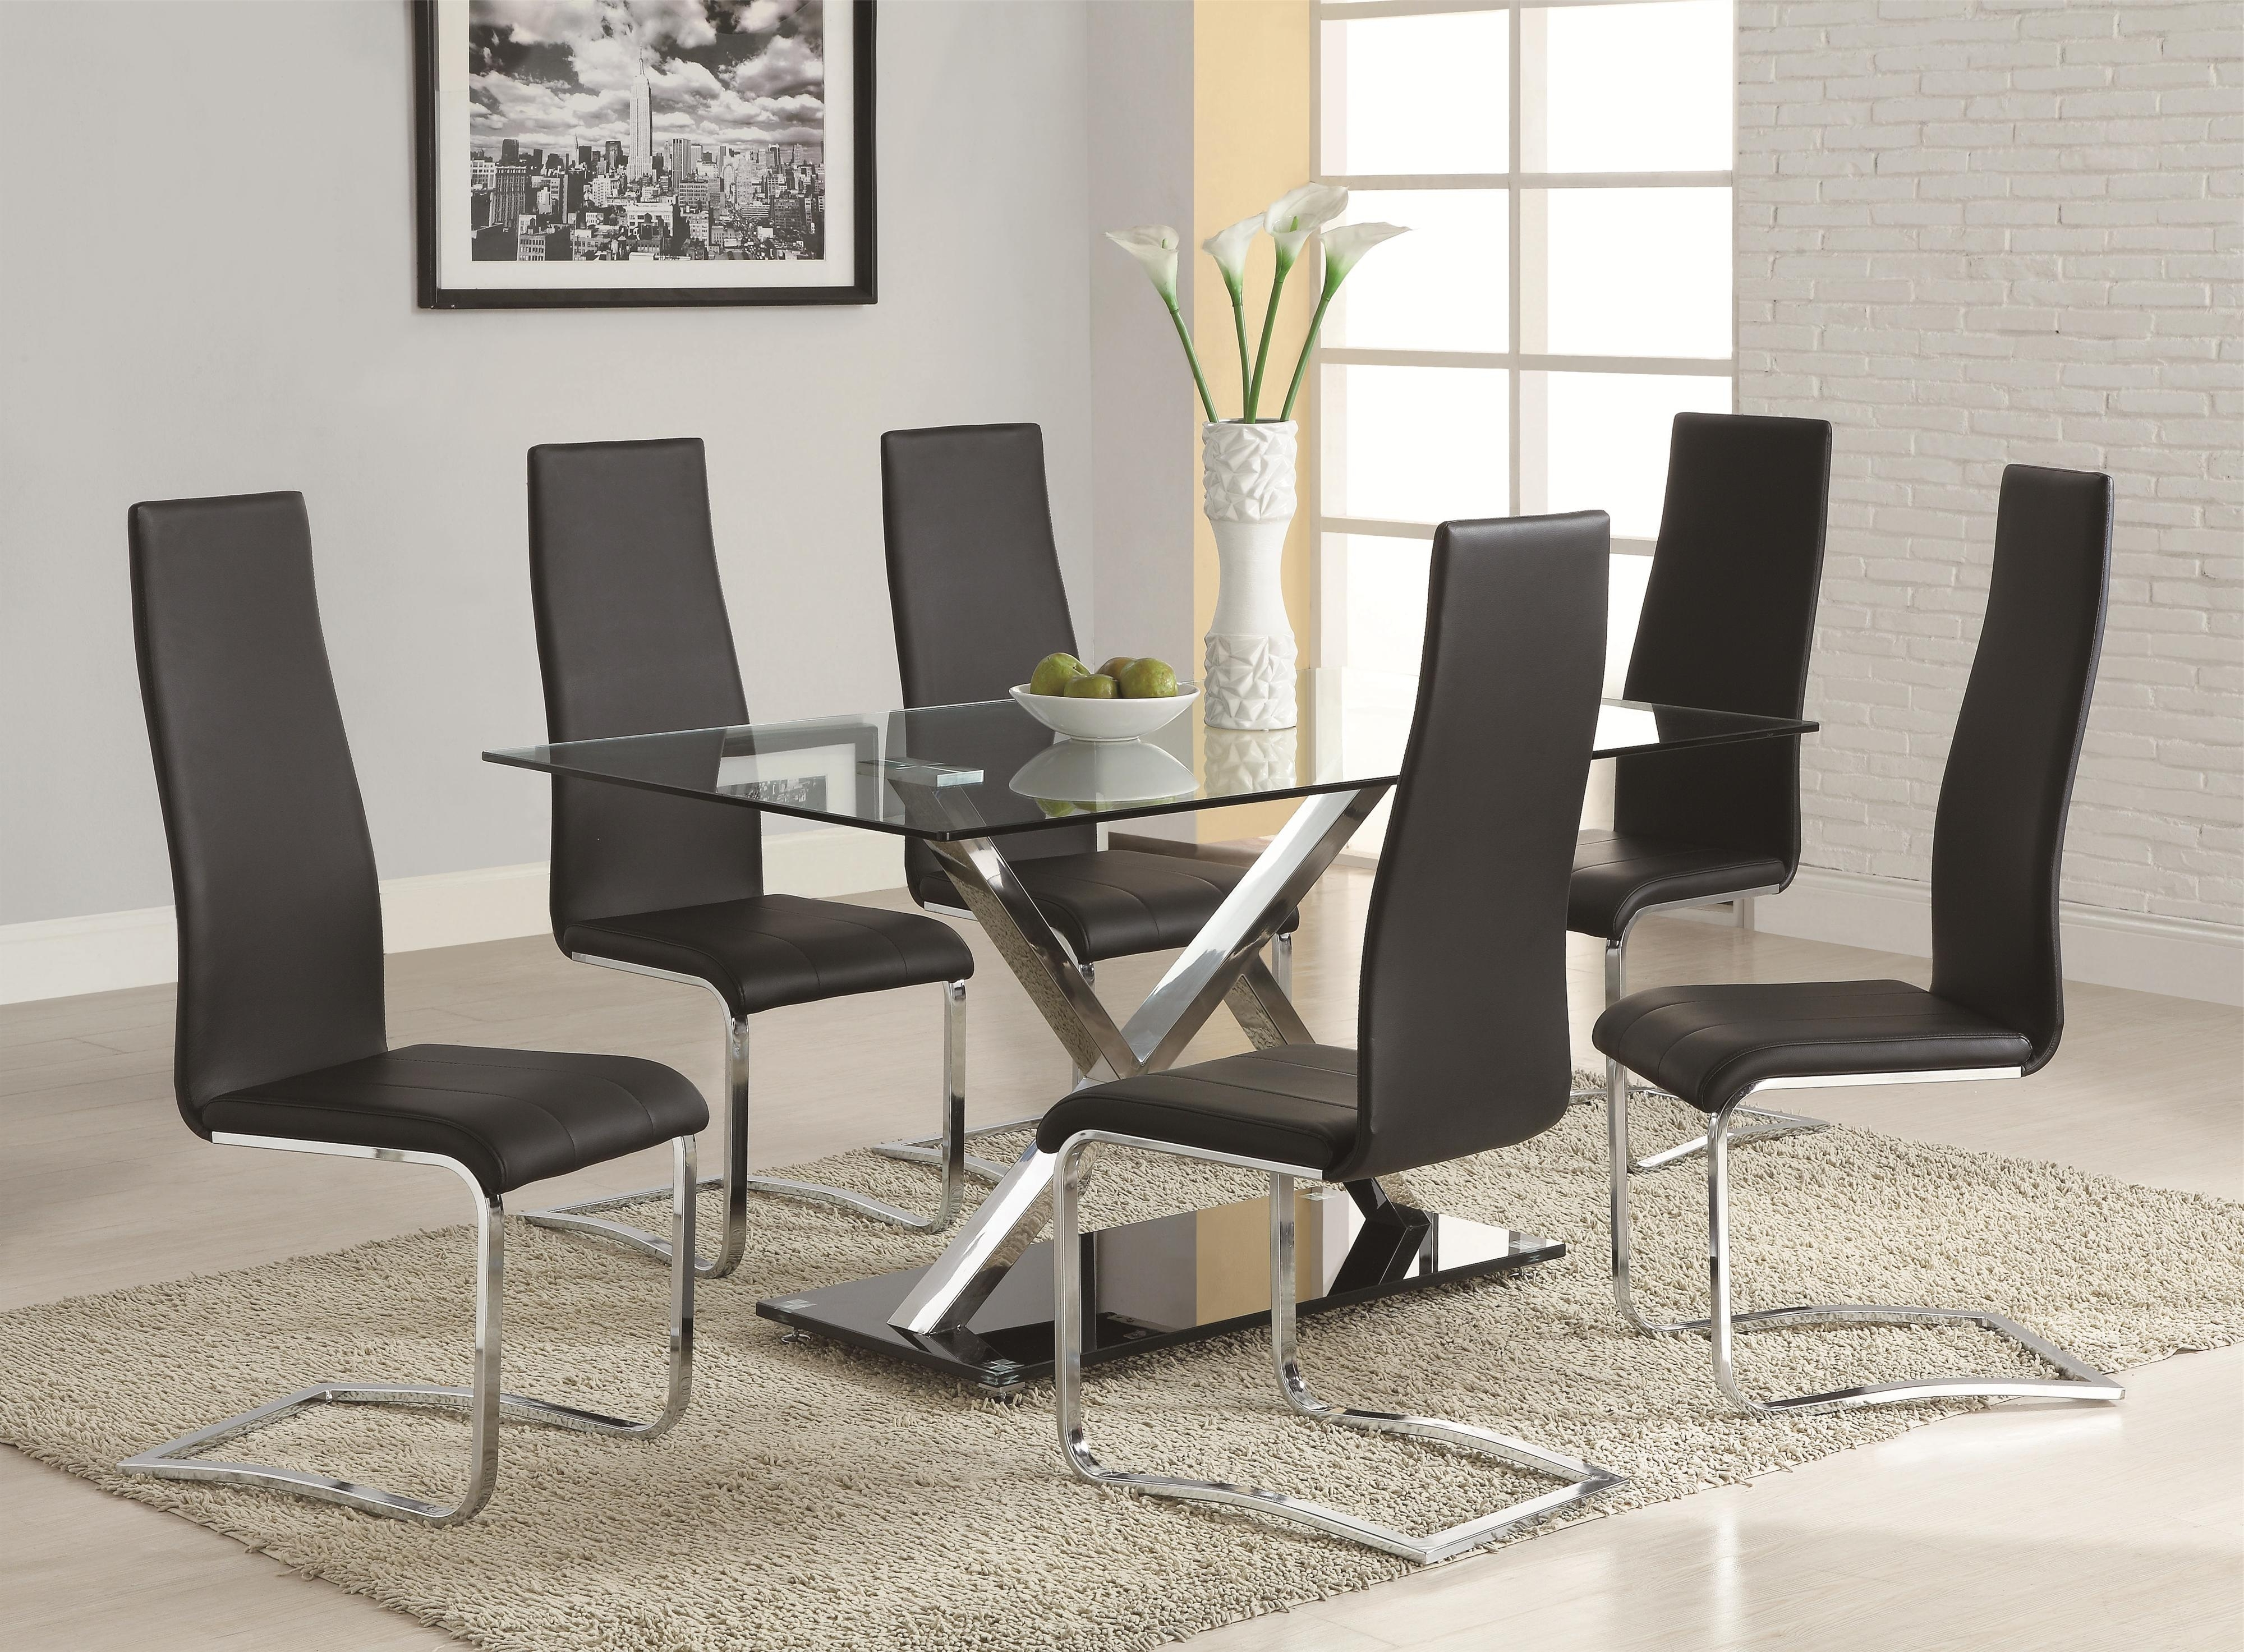 Northeast Pertaining To Modern Dining Room Furniture (View 2 of 25)